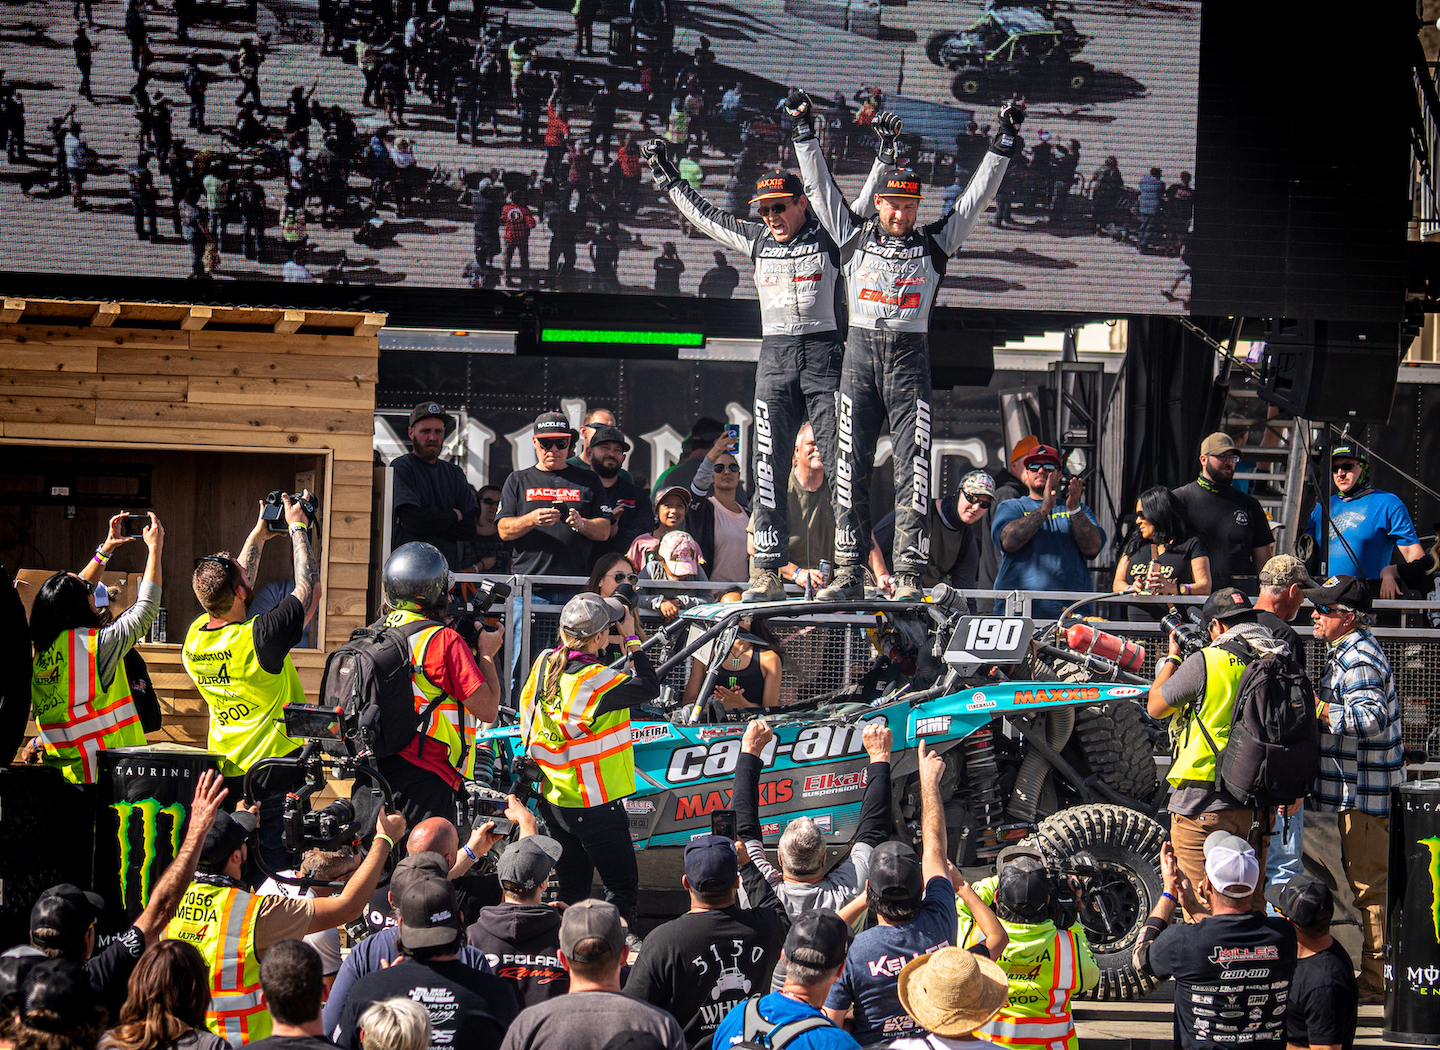 Can-Am racer Hunter Miller and co-pilot Chad Hughes celebrate on the podium after winning the 2020 Can-Am King of the Hammers UTV race in their Can-Am Maverick X3 X rc Turbo RR side-by-side vehicle.